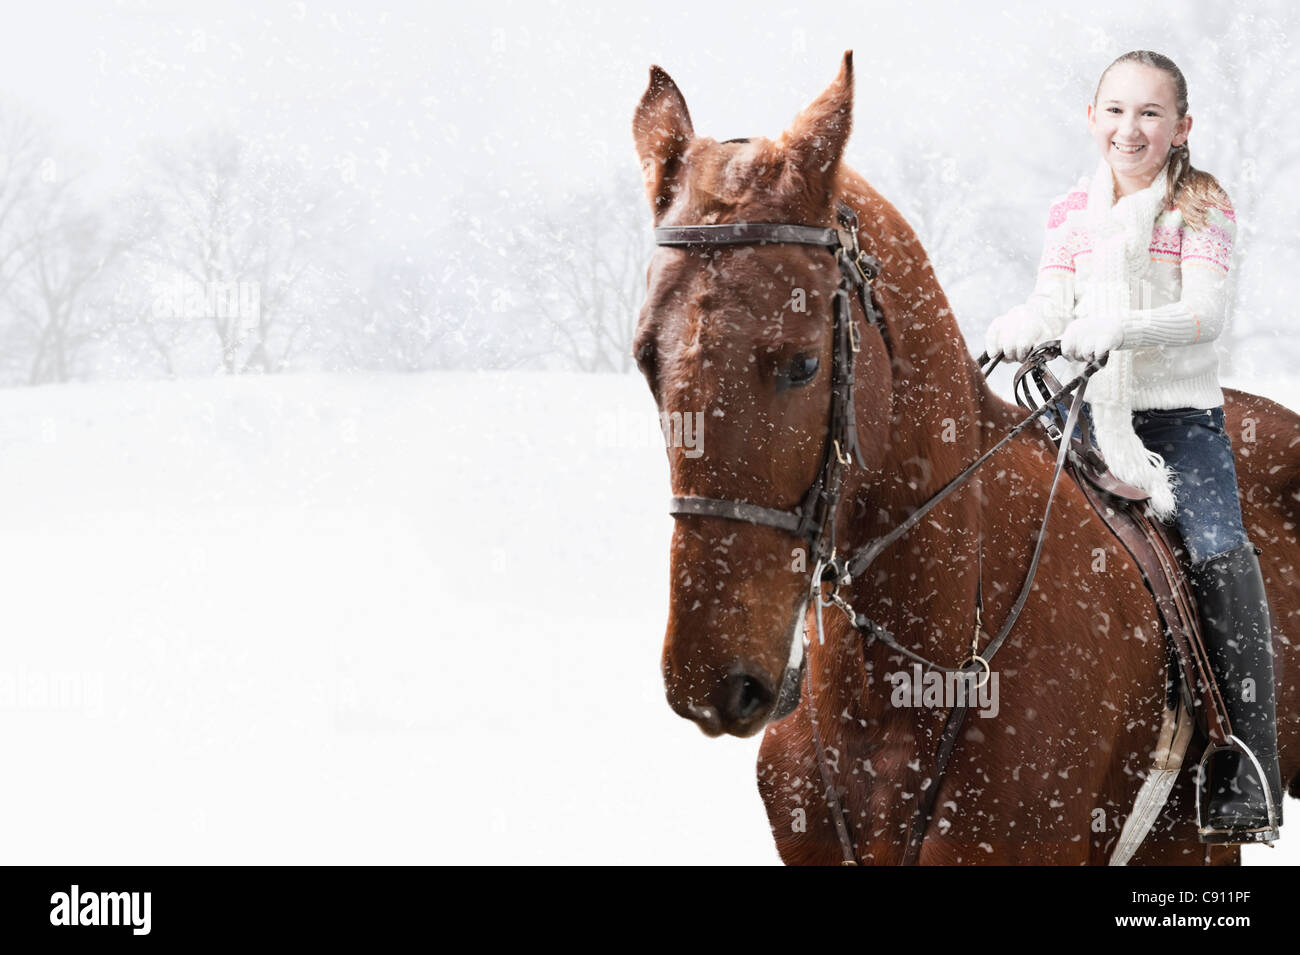 USA, Illinois, Metamora, Smiling girl (10-11) riding horse during winter - Stock Image